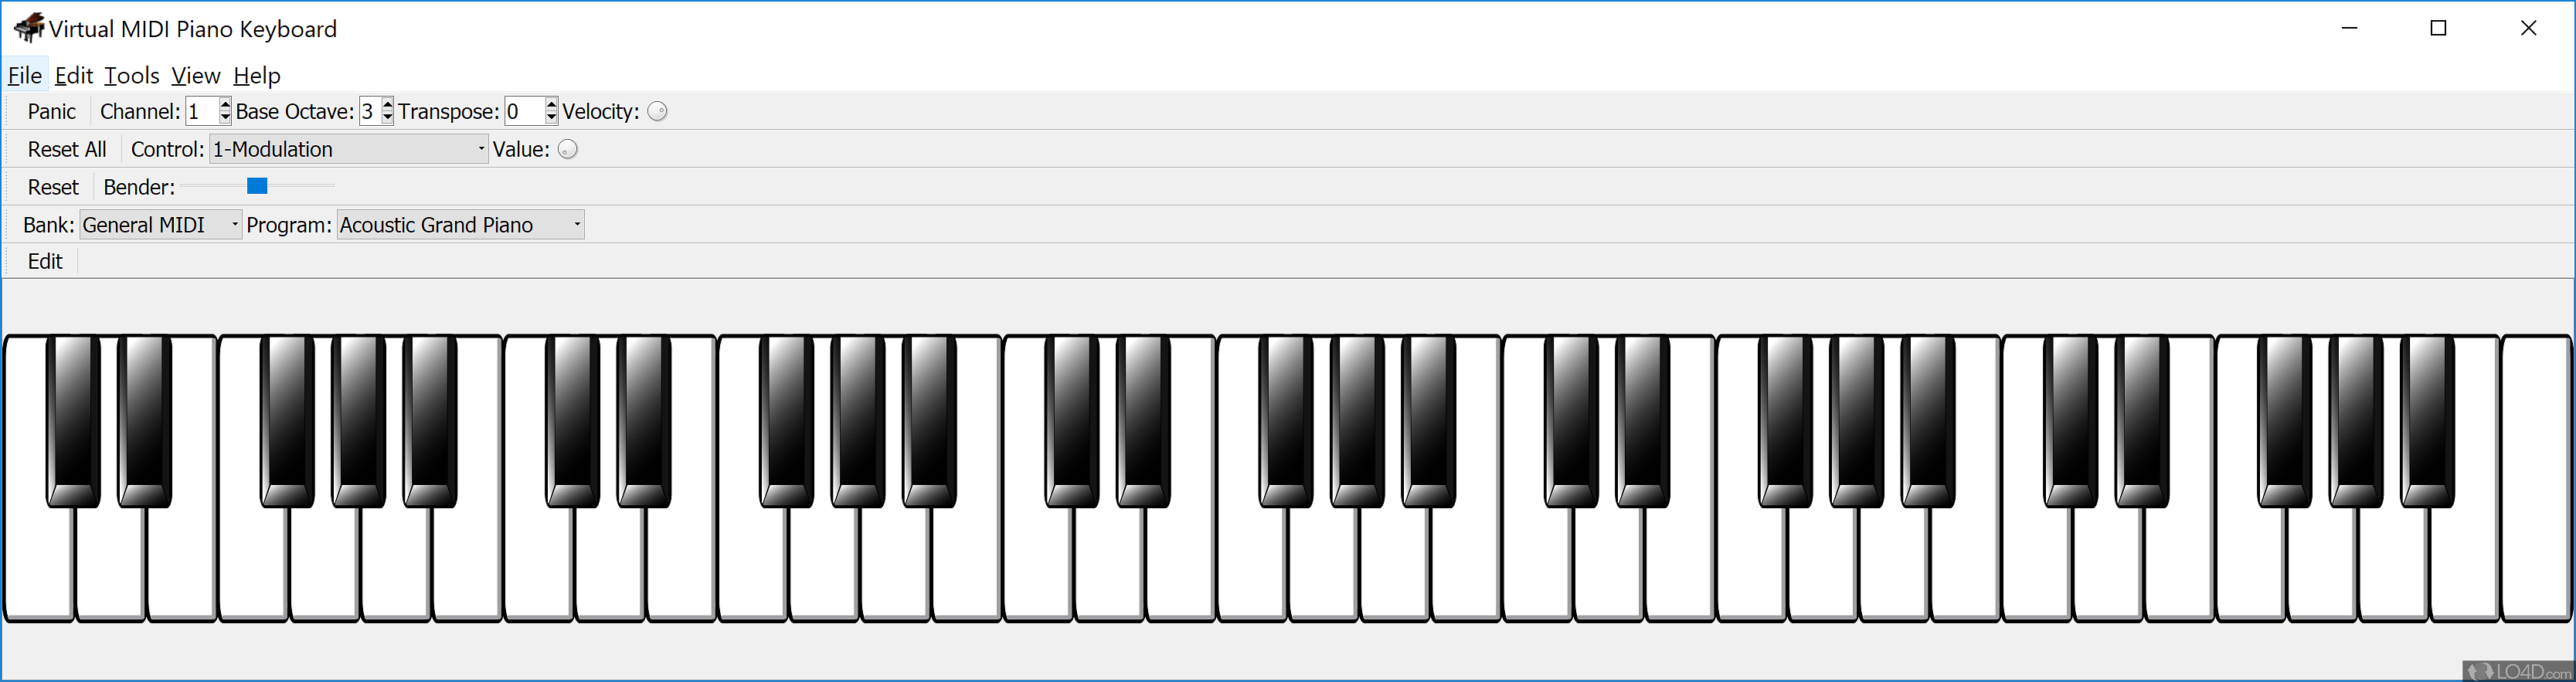 Virtual MIDI Piano Keyboard - Screenshots